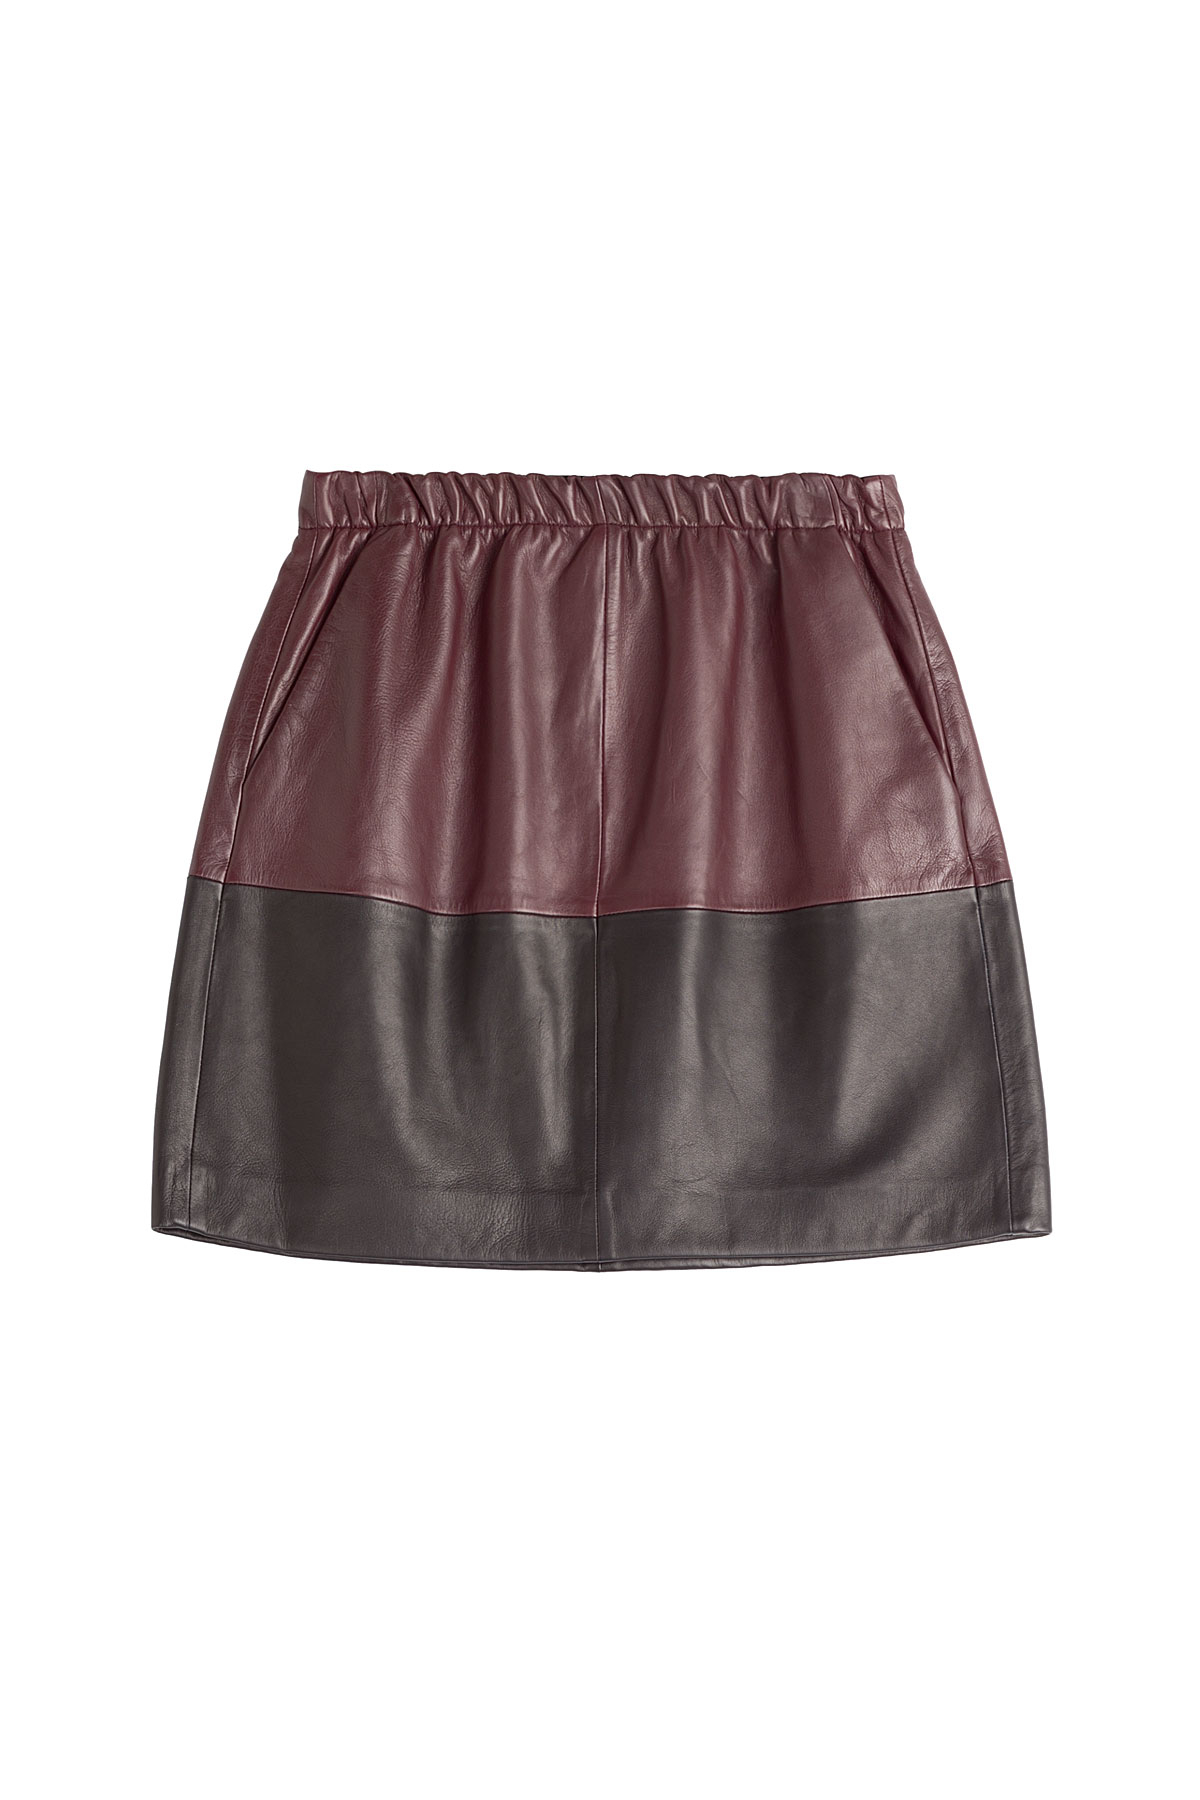 8e97c12a72 Vince - Two Tone Leather Skirt - Multicolor - Lyst